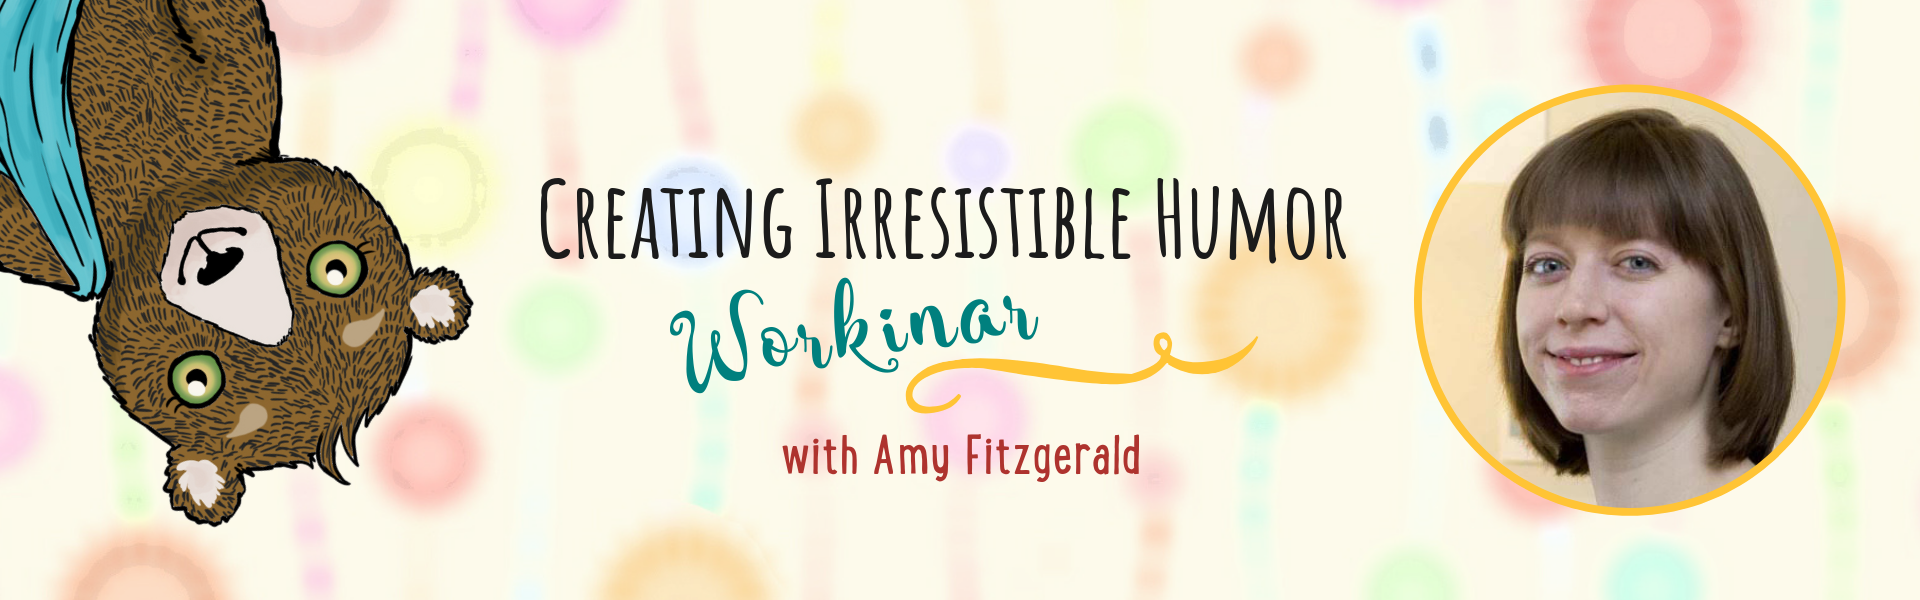 Creating Irresistible Humor Workinar with Amy Fitzgerald